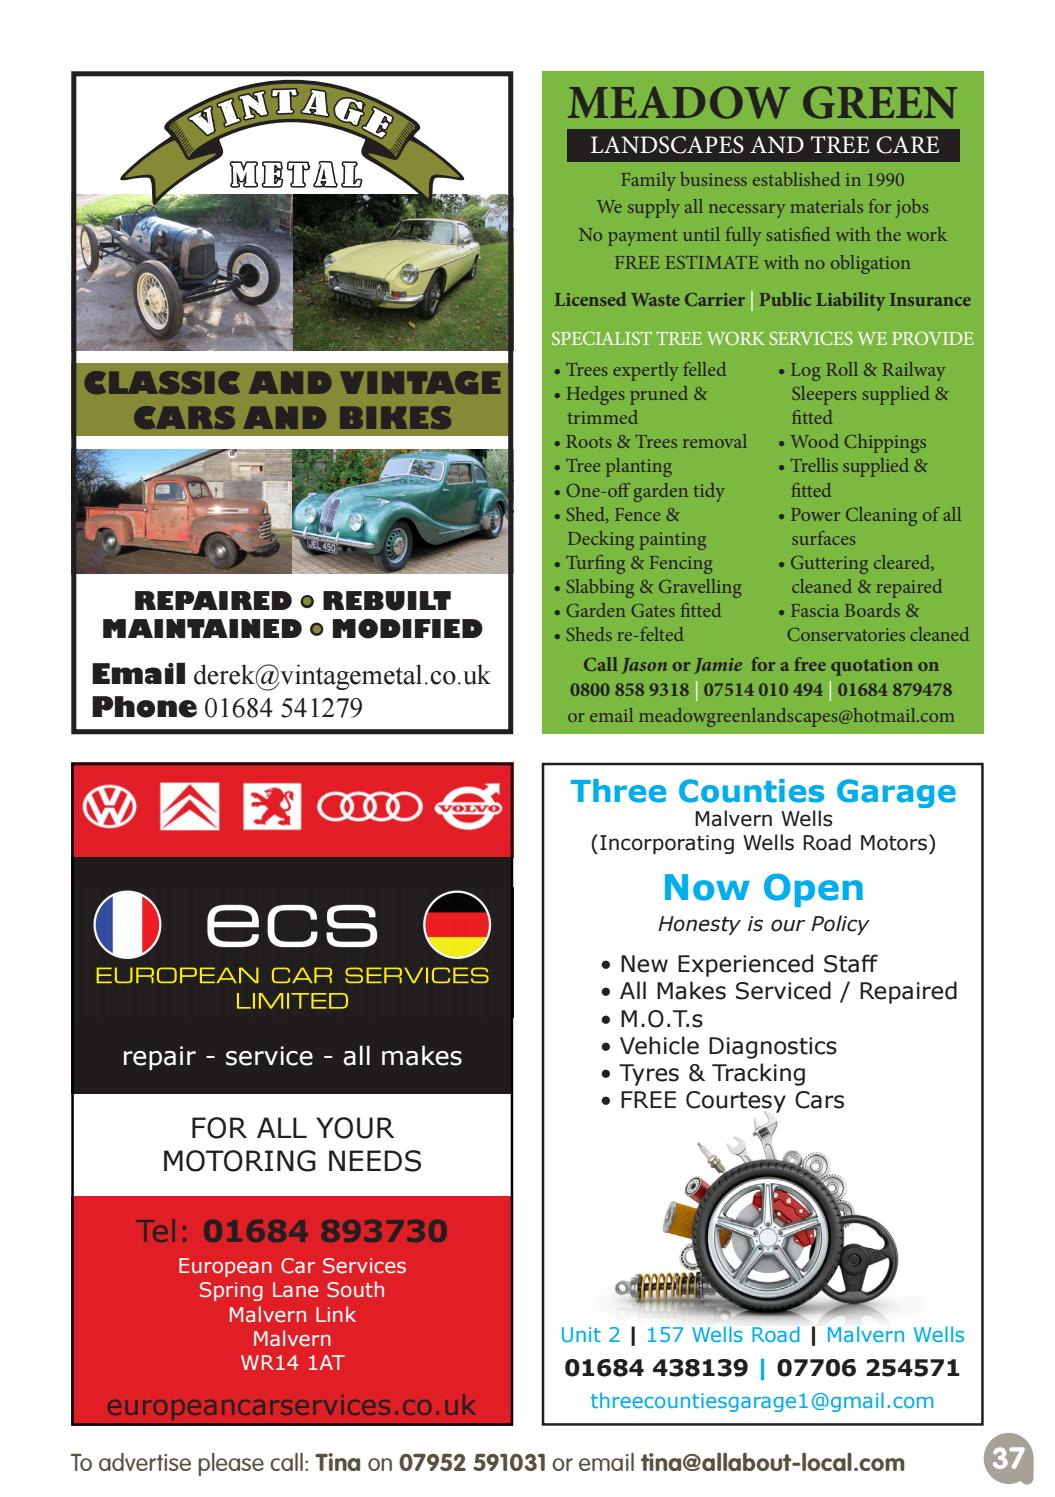 All About Malvern Decjan 2016 By All About Local Magazines Ltd Issuu